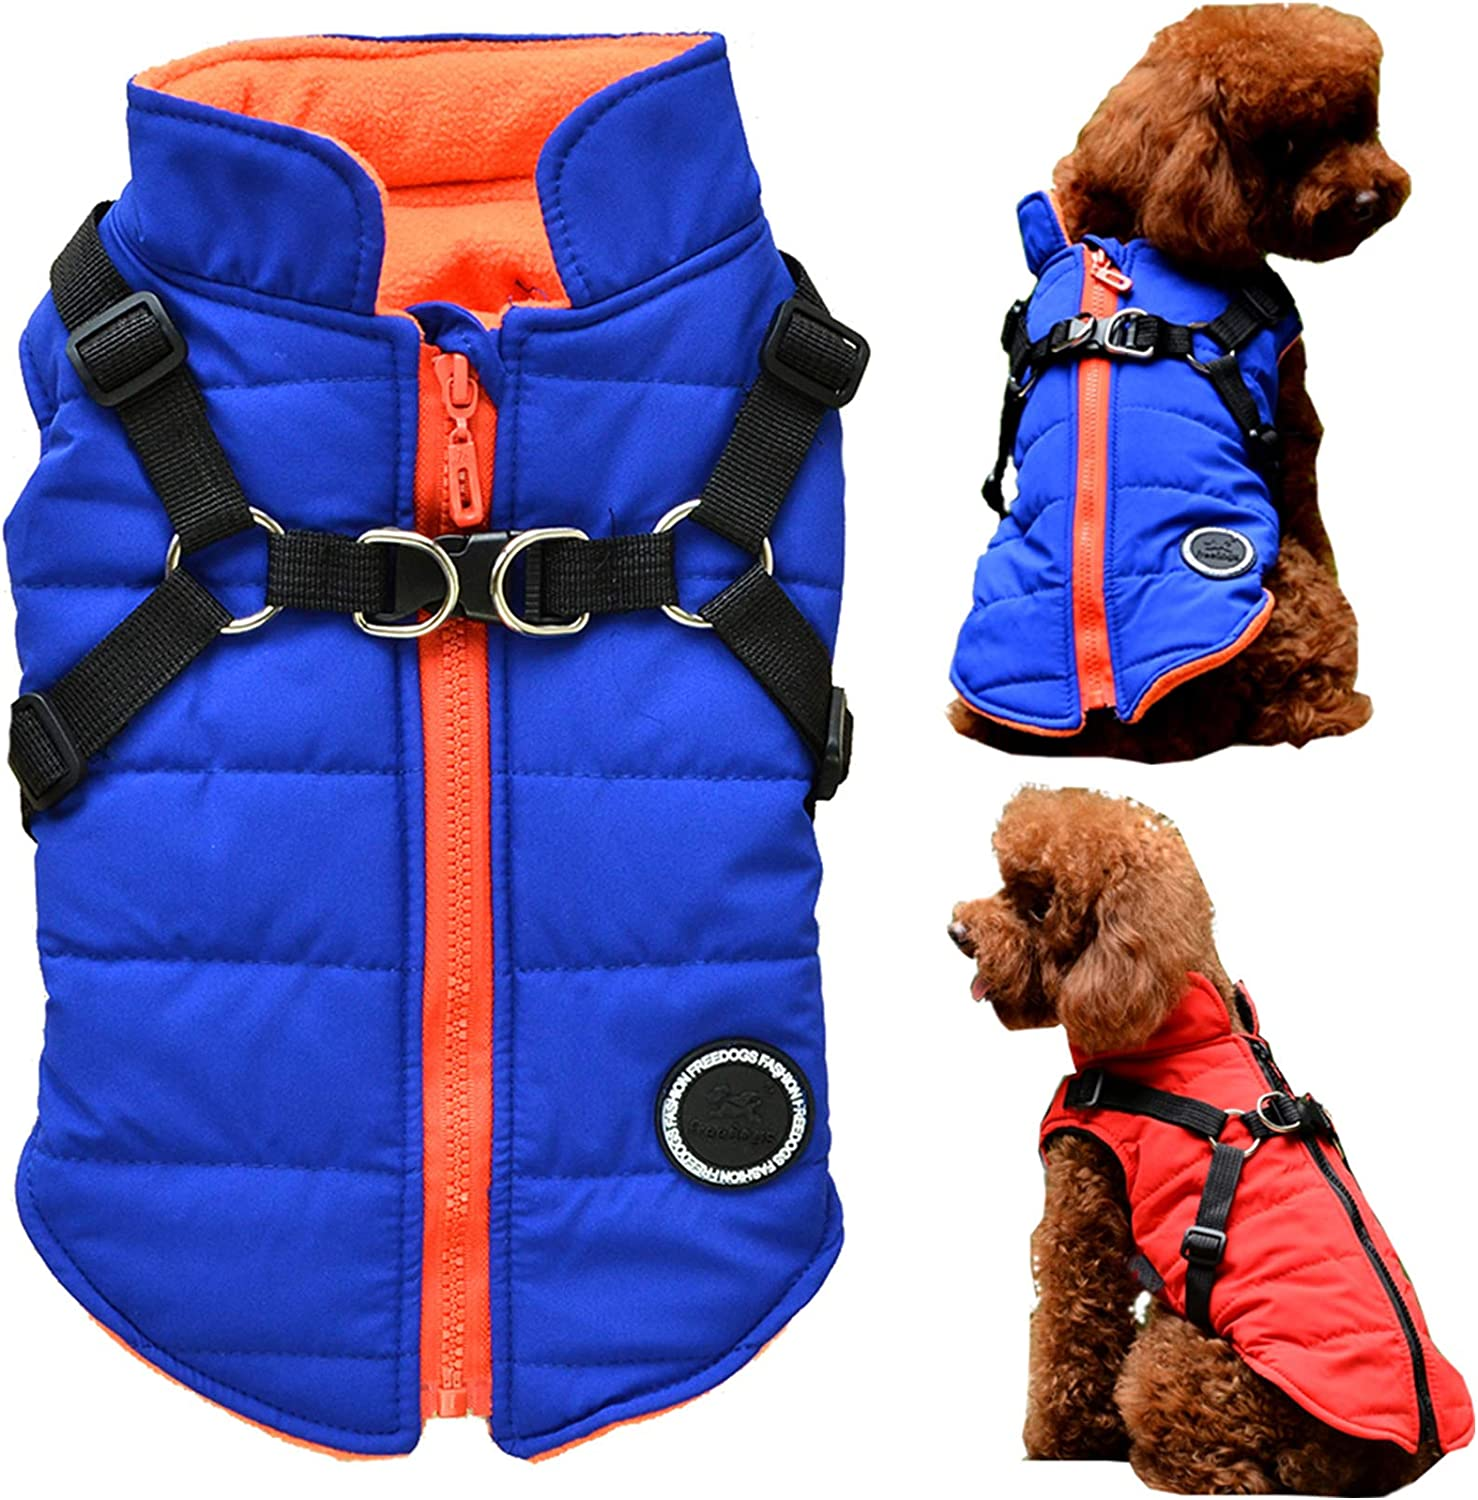 2XL Maysunday Dog Winter Warm Jacket Puppy Vest with Harness Pet Fleece Lined Outfit Cold Weather Coat Back Length:15.75 2XL , Blue